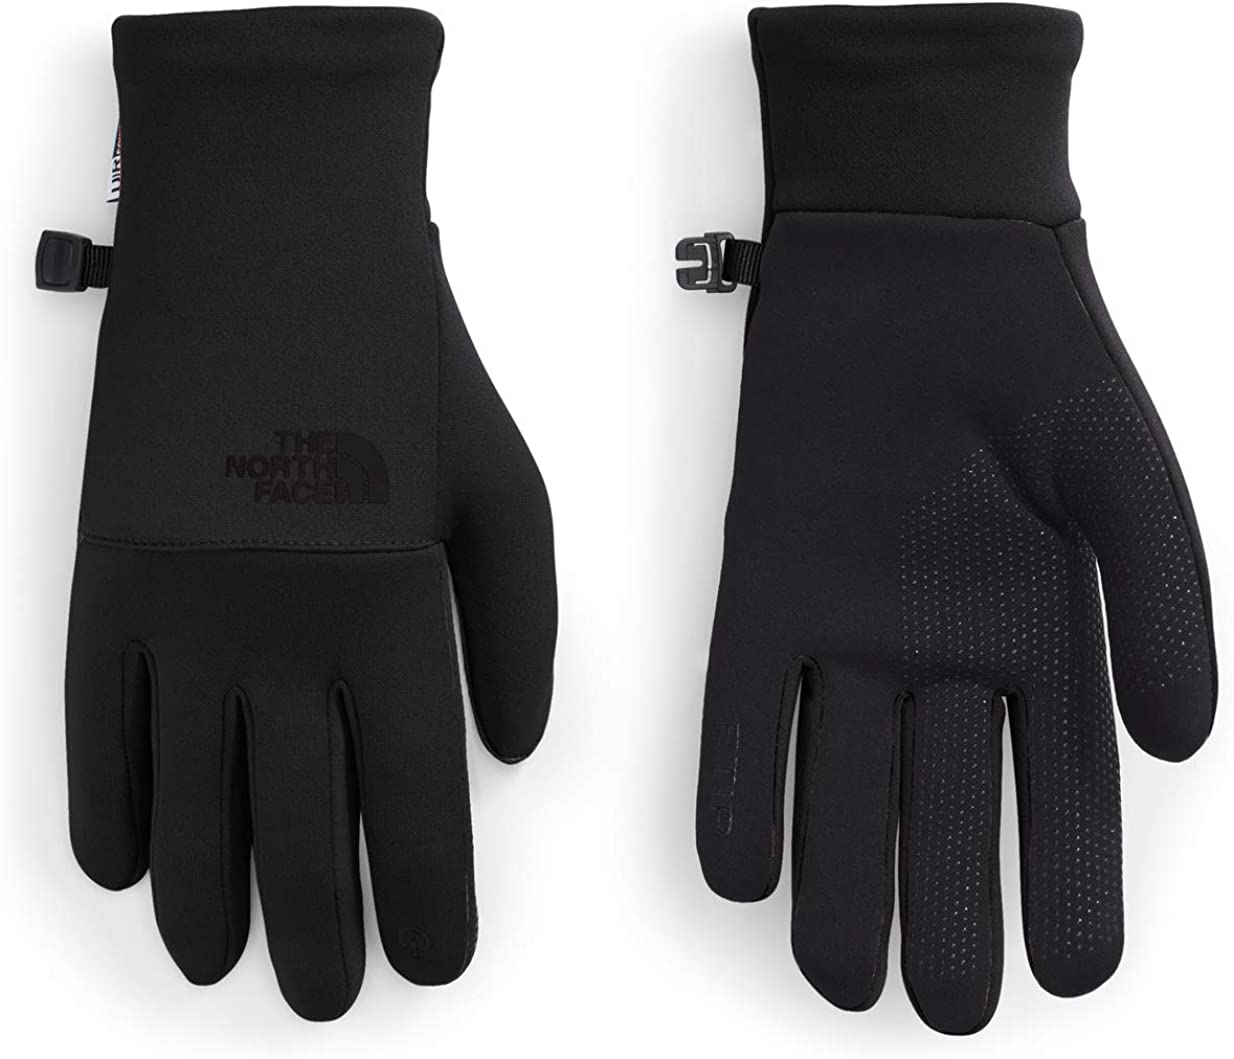 The North Face Women's Etip Recycled Glove